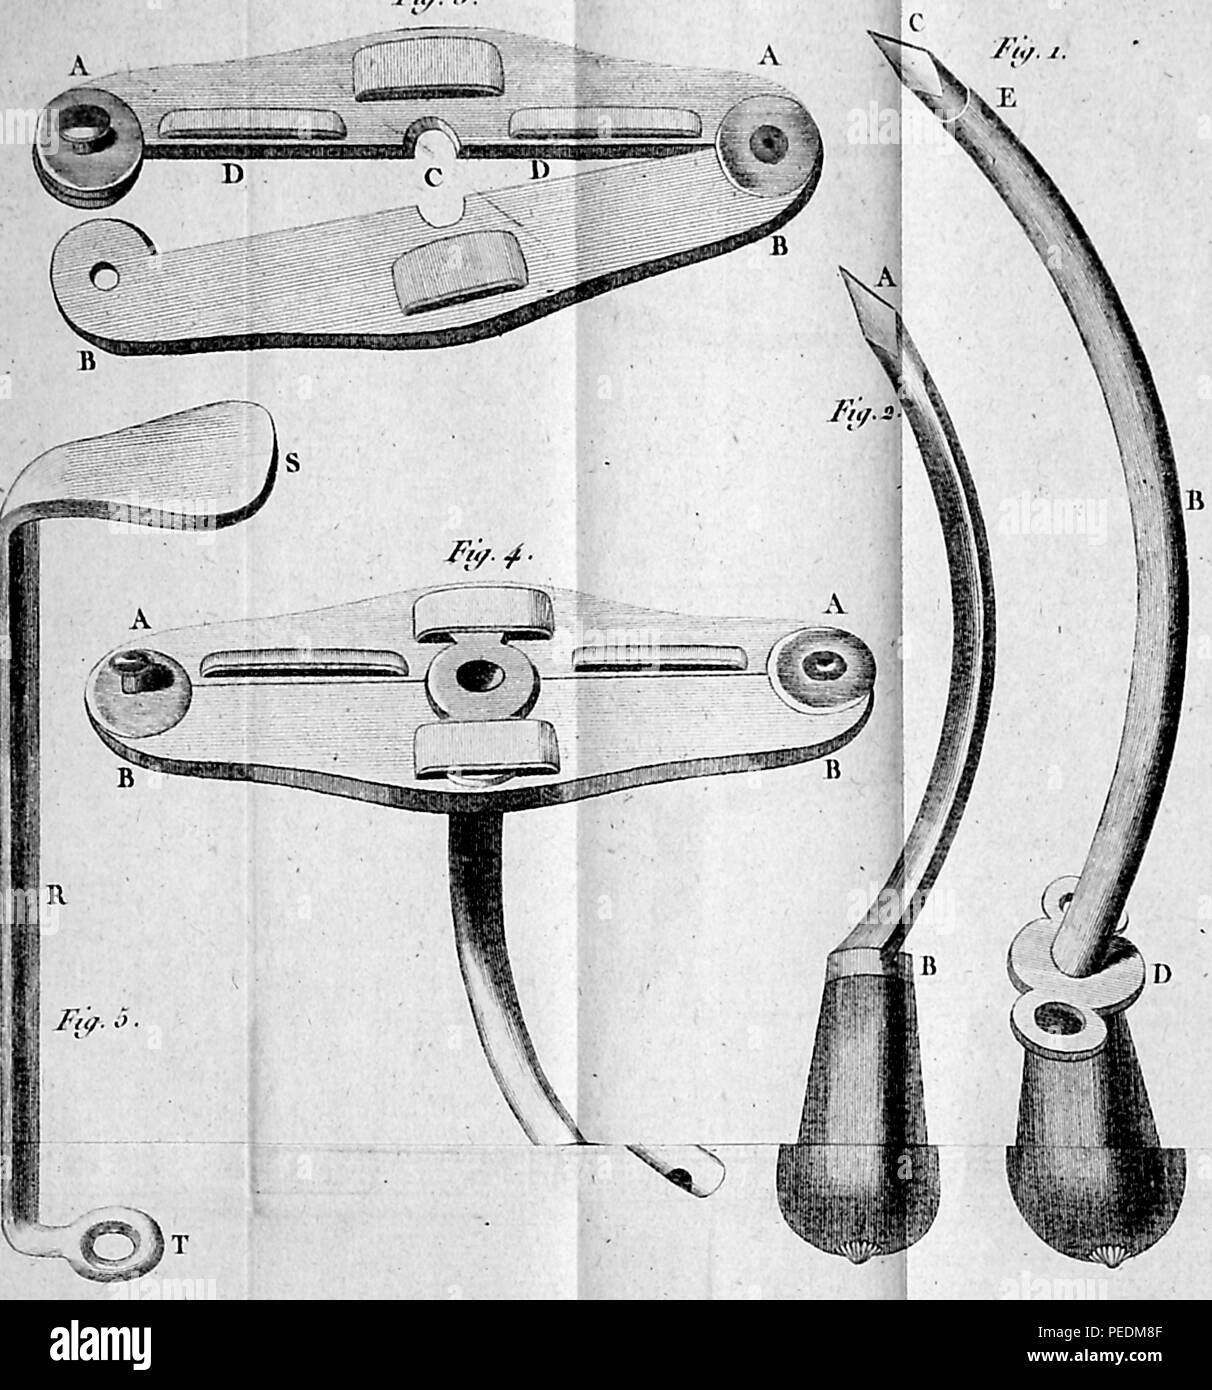 Illustration of surgical implements, 1825. Courtesy Internet Archive. () - Stock Image